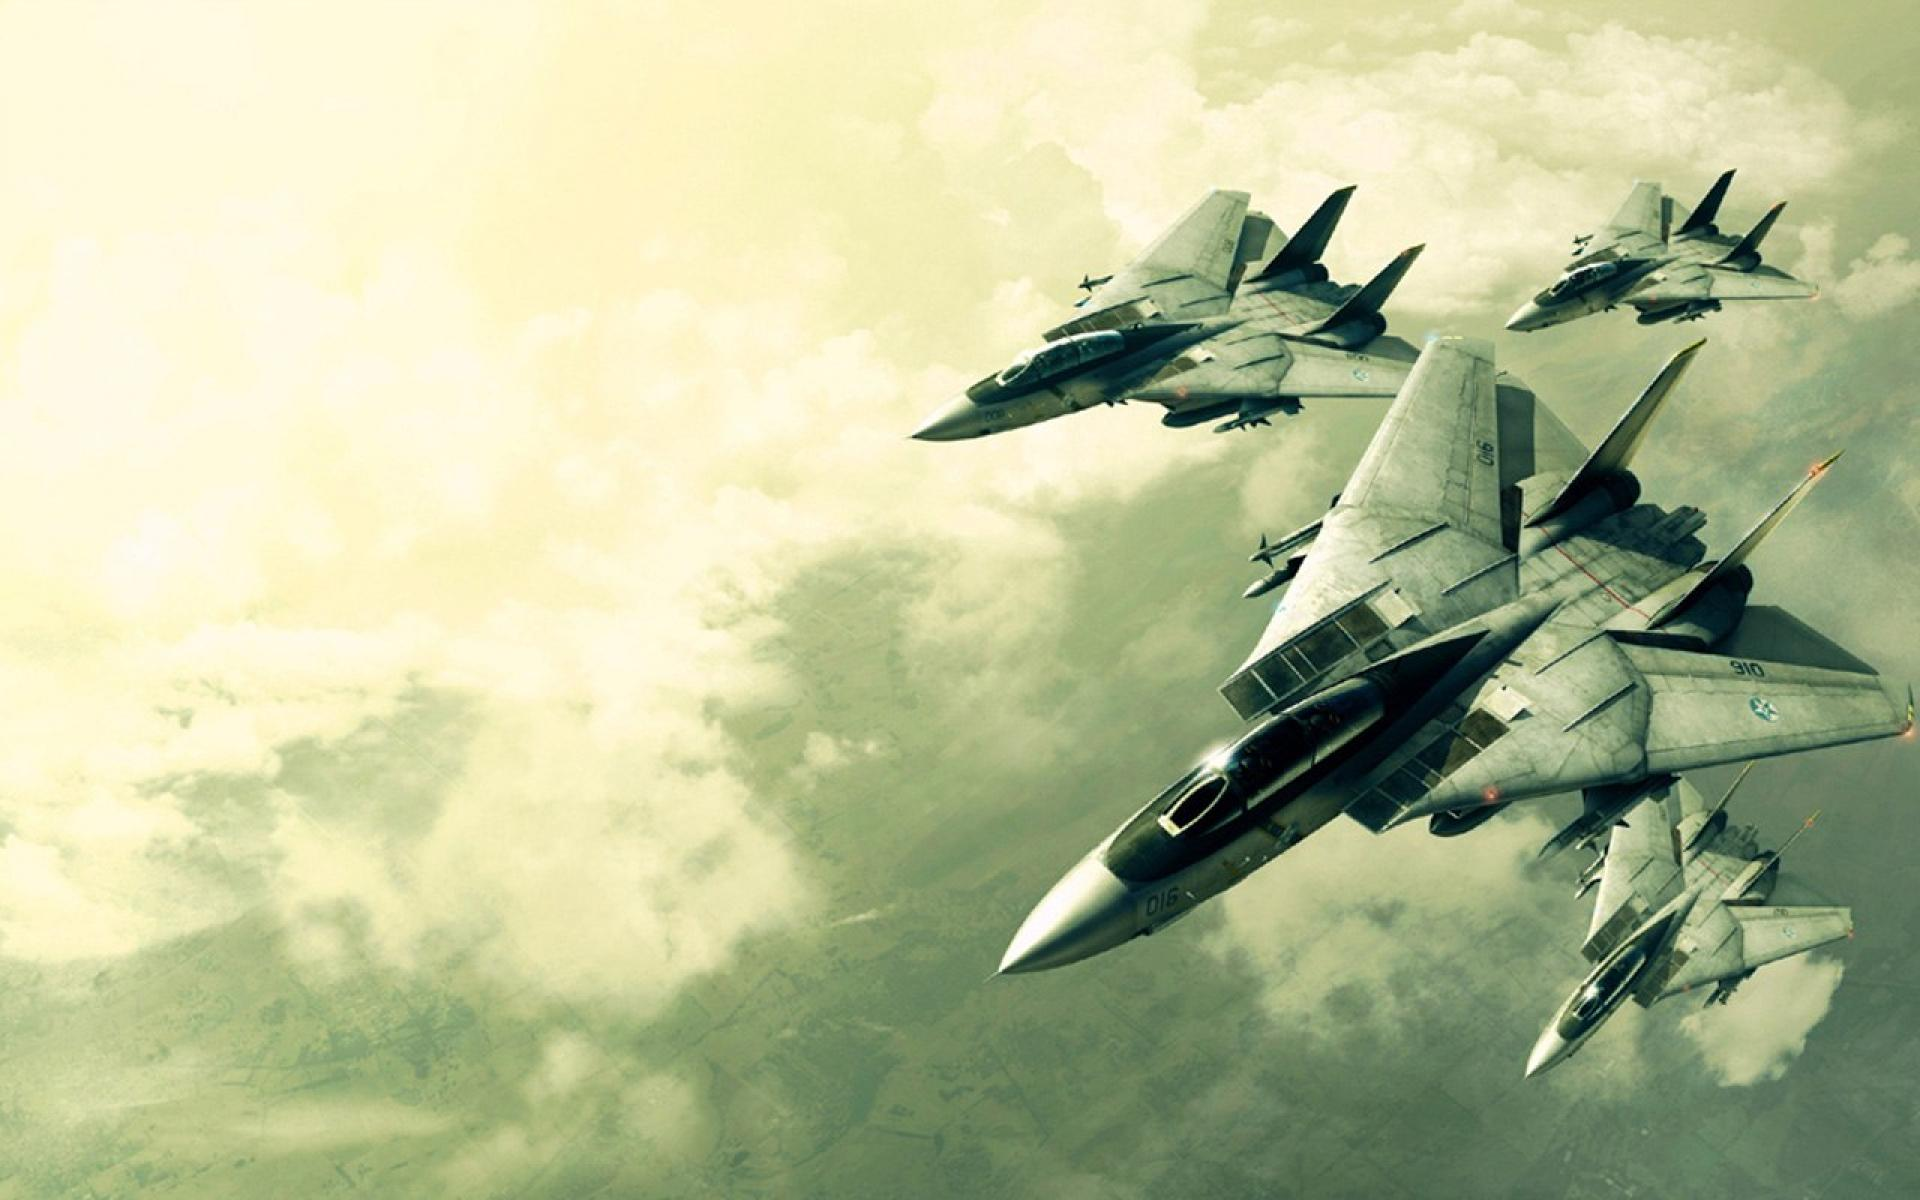 ace combat game jet airplane aircraft fighter plane military gd